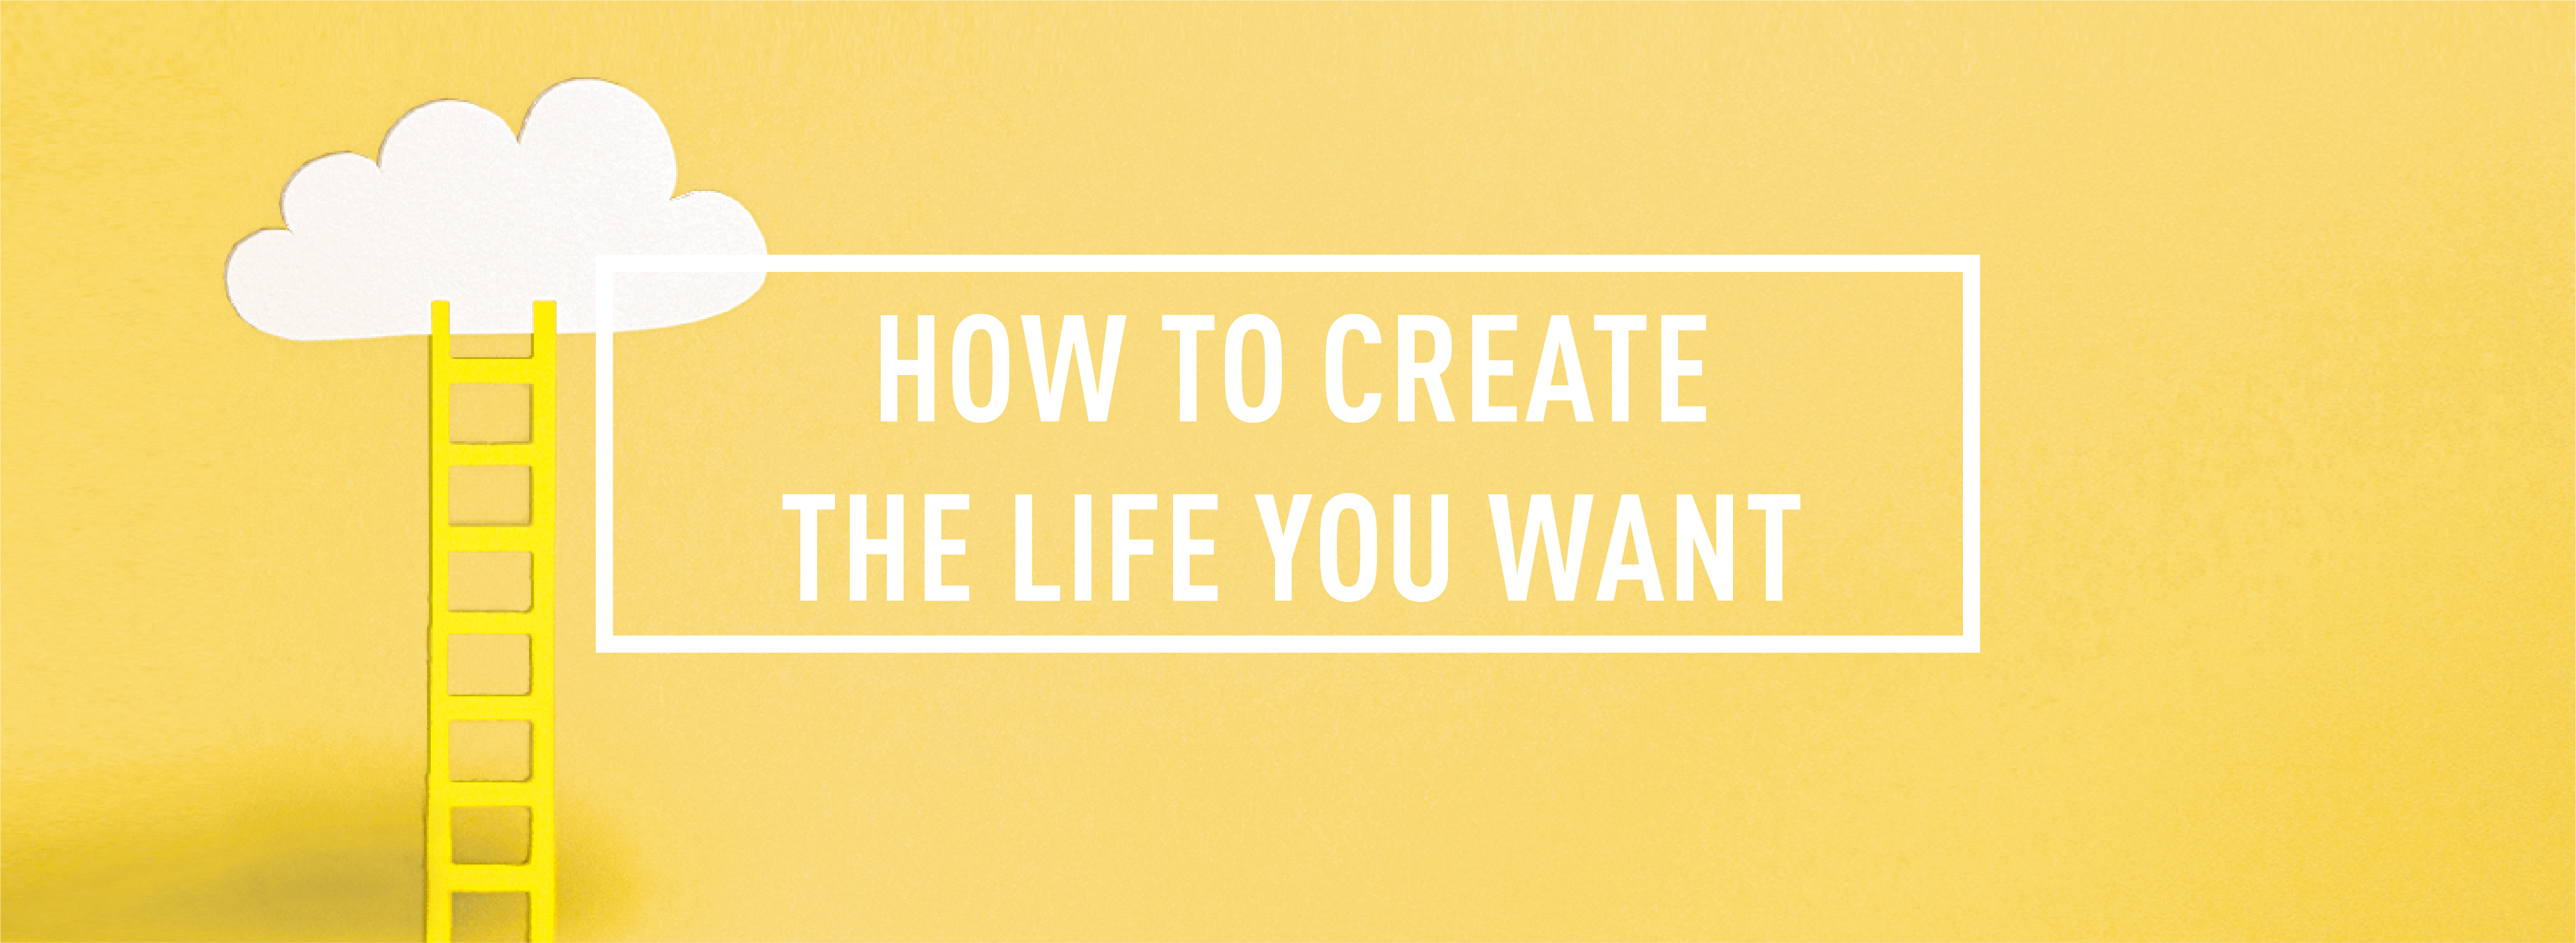 HOW TO CREATE THE LIFE YOU WANT_Webpage Header